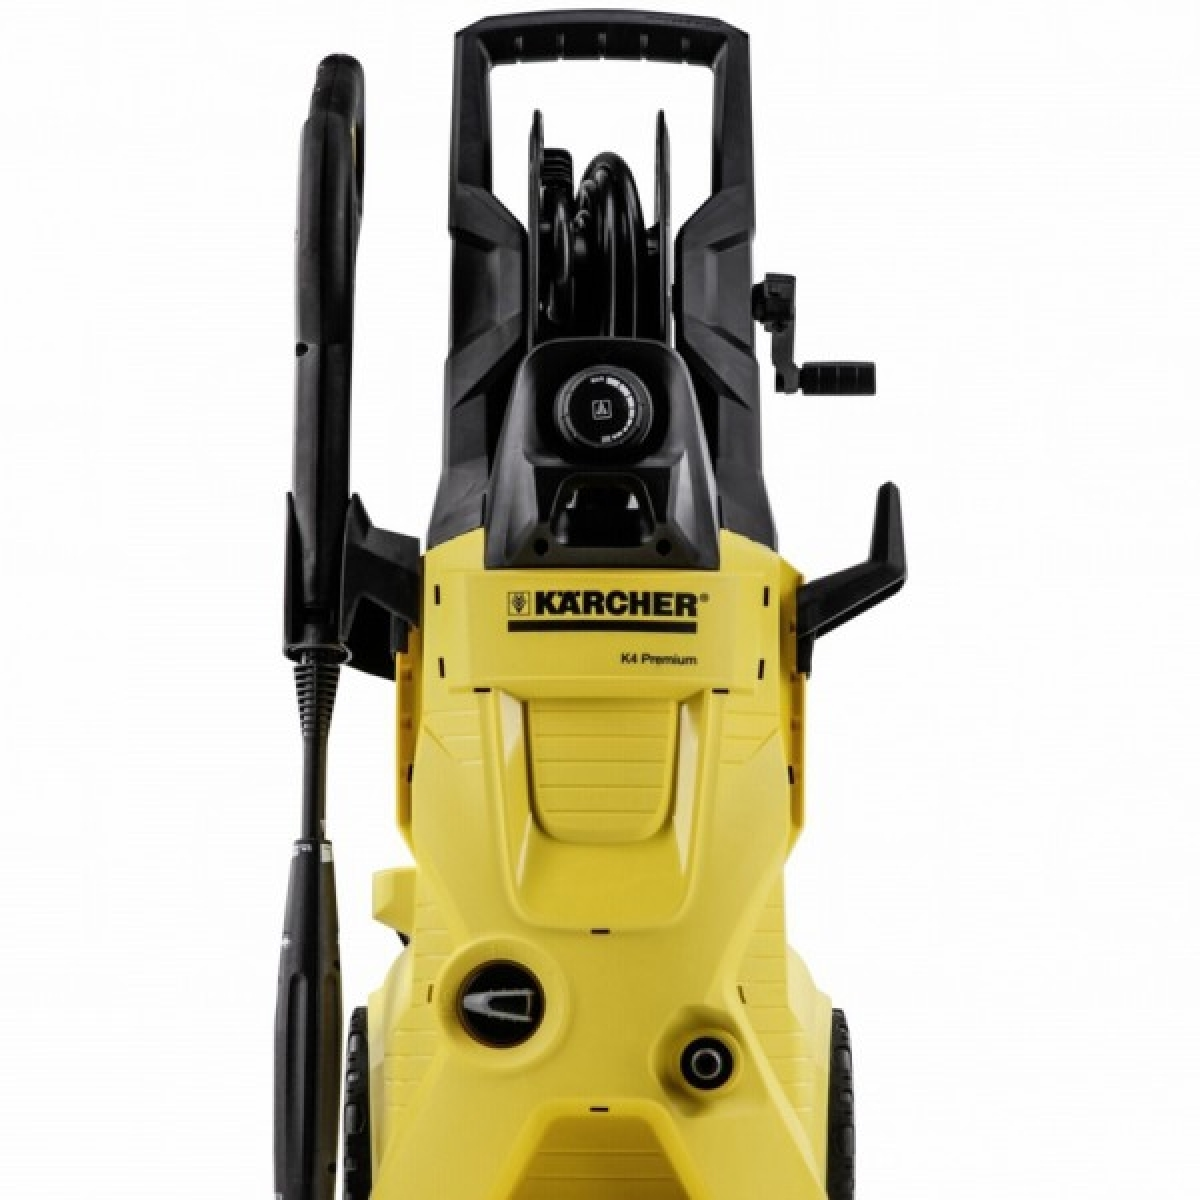 karcher k4 premium induction high pressure washer my power tools. Black Bedroom Furniture Sets. Home Design Ideas